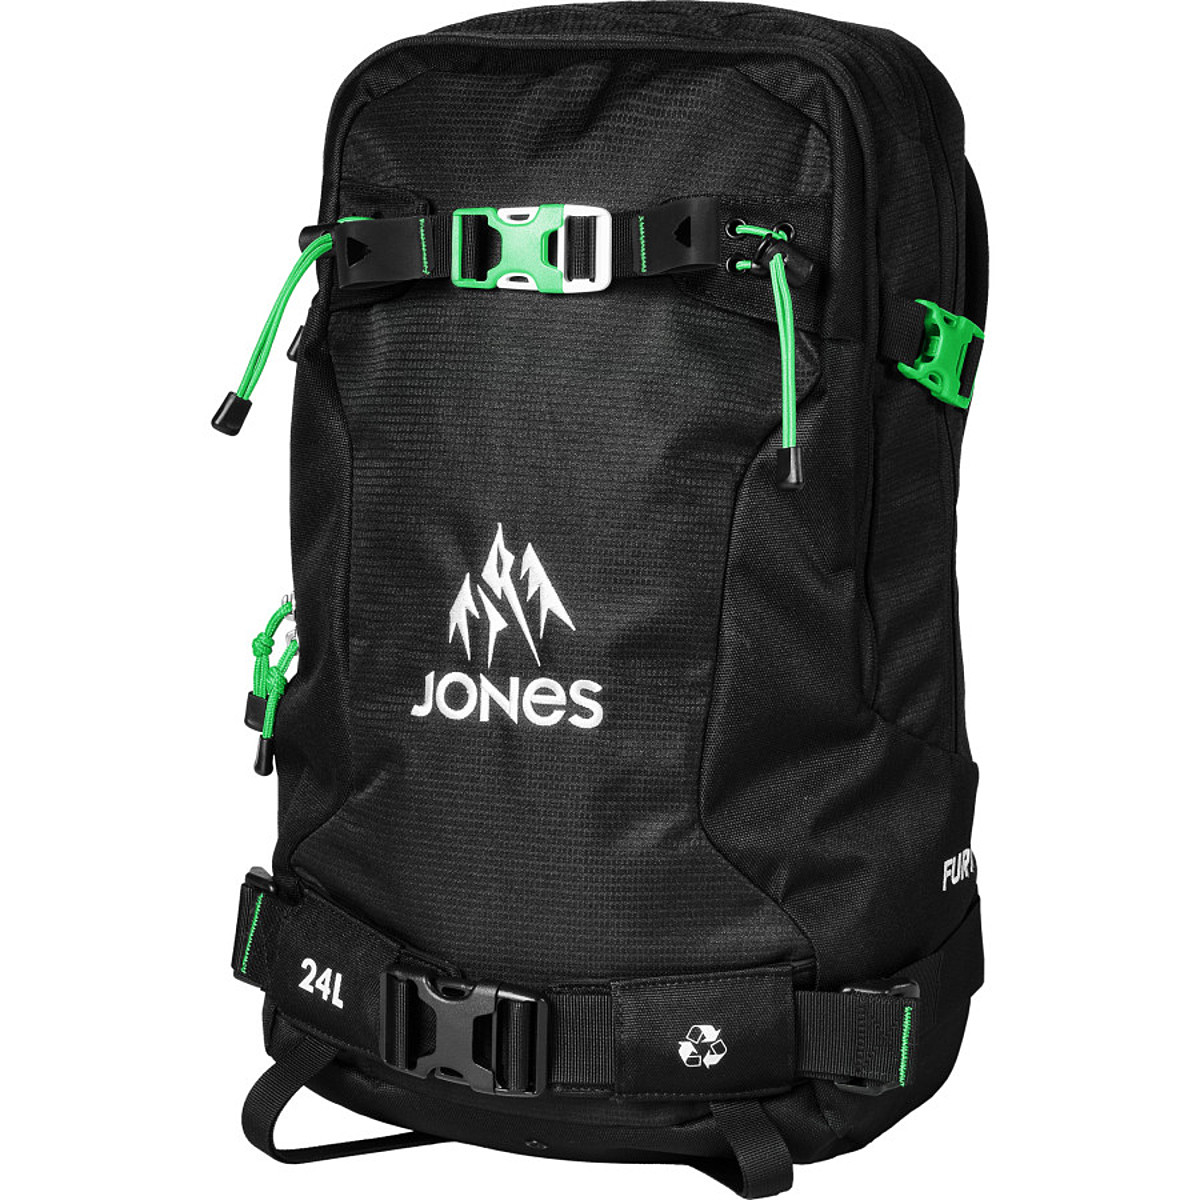 Jones Snowboards Further 24 Backpack